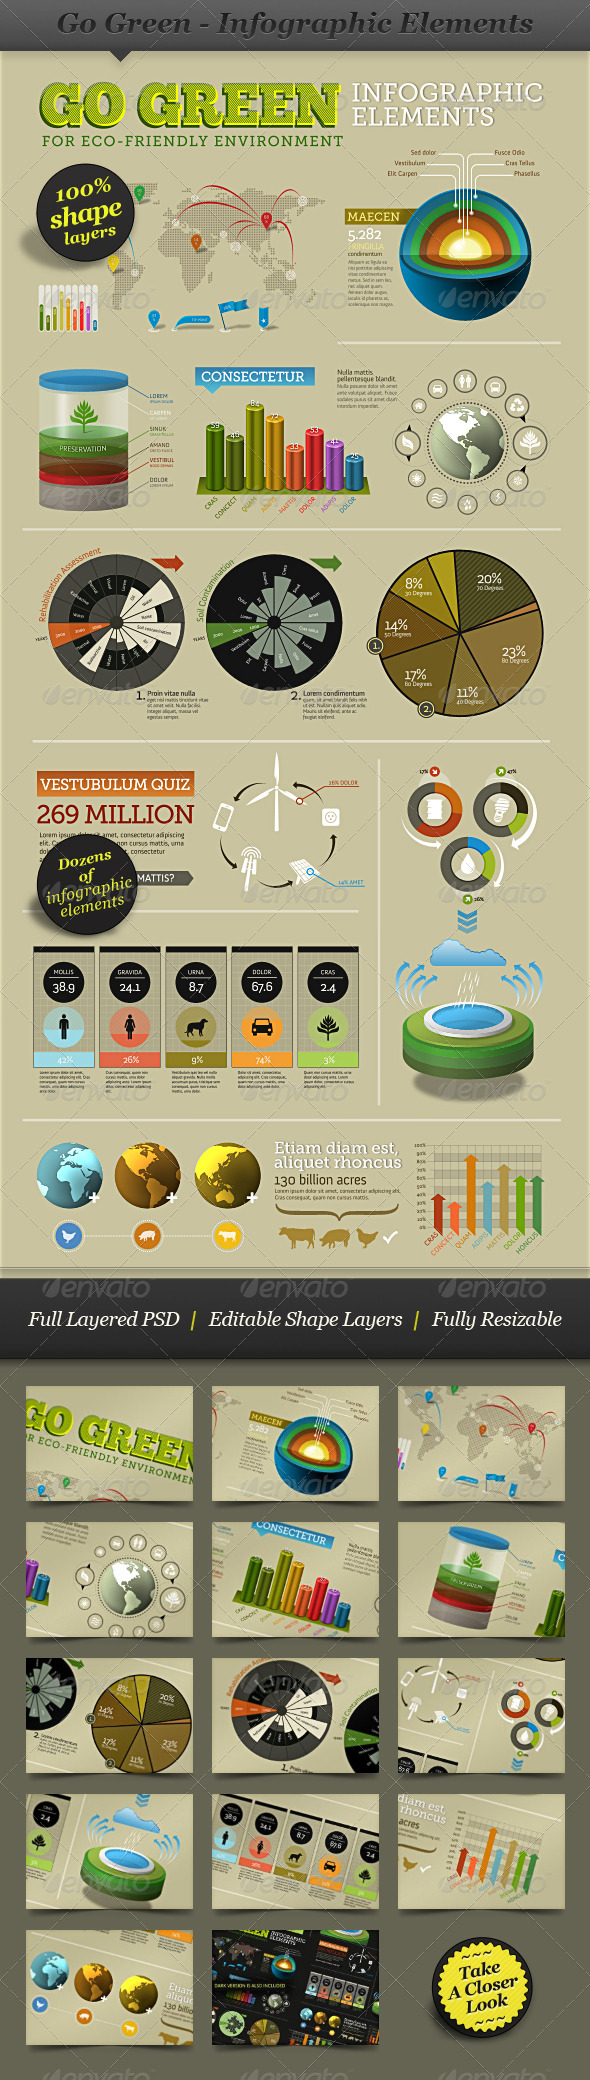 Go Green - Infographic Elements - info template - Infographics